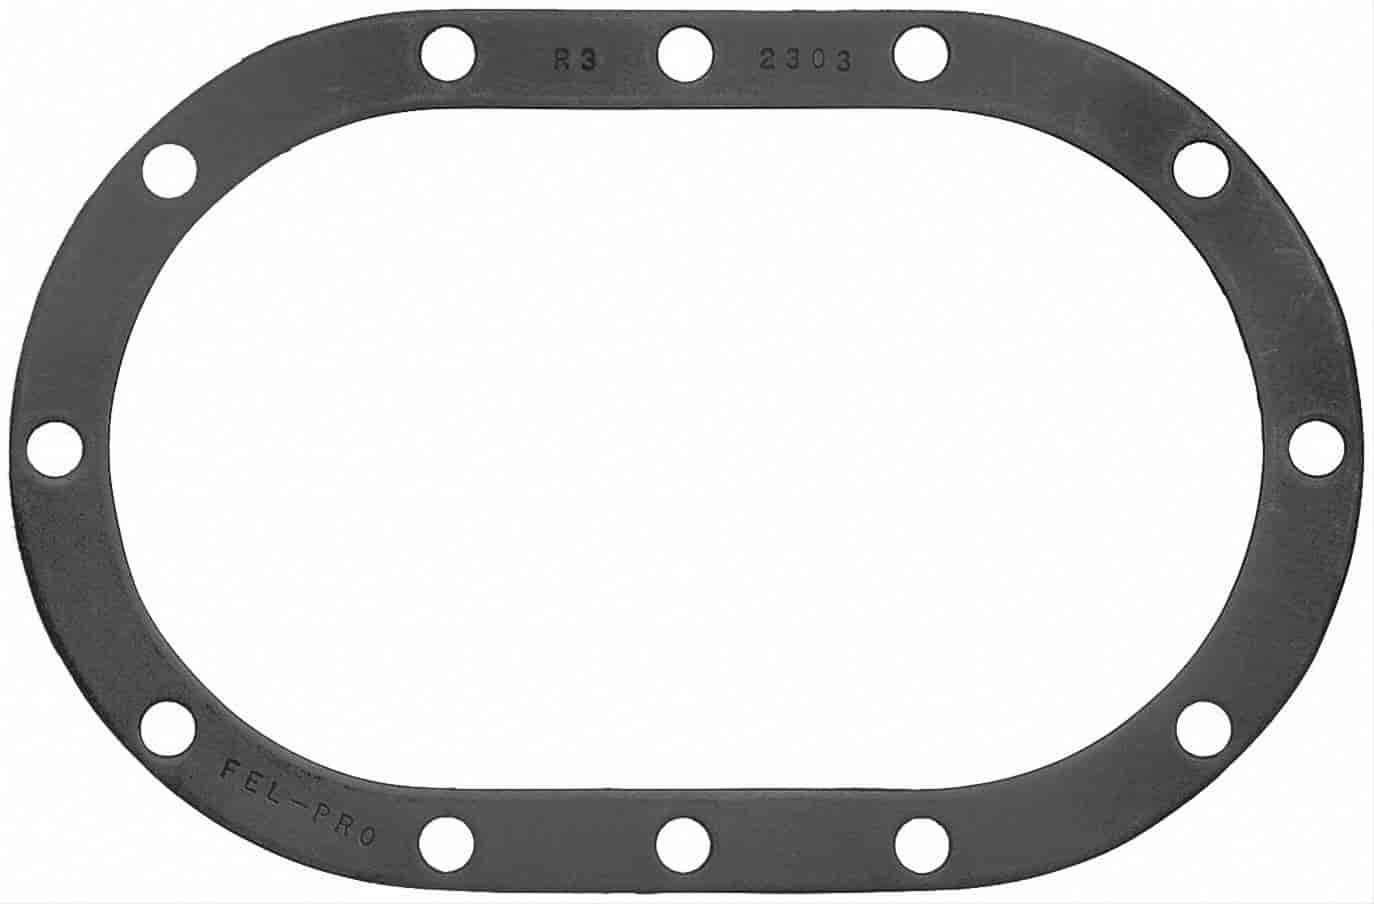 Fel-Pro 2303 - Fel-Pro Rear End Gaskets